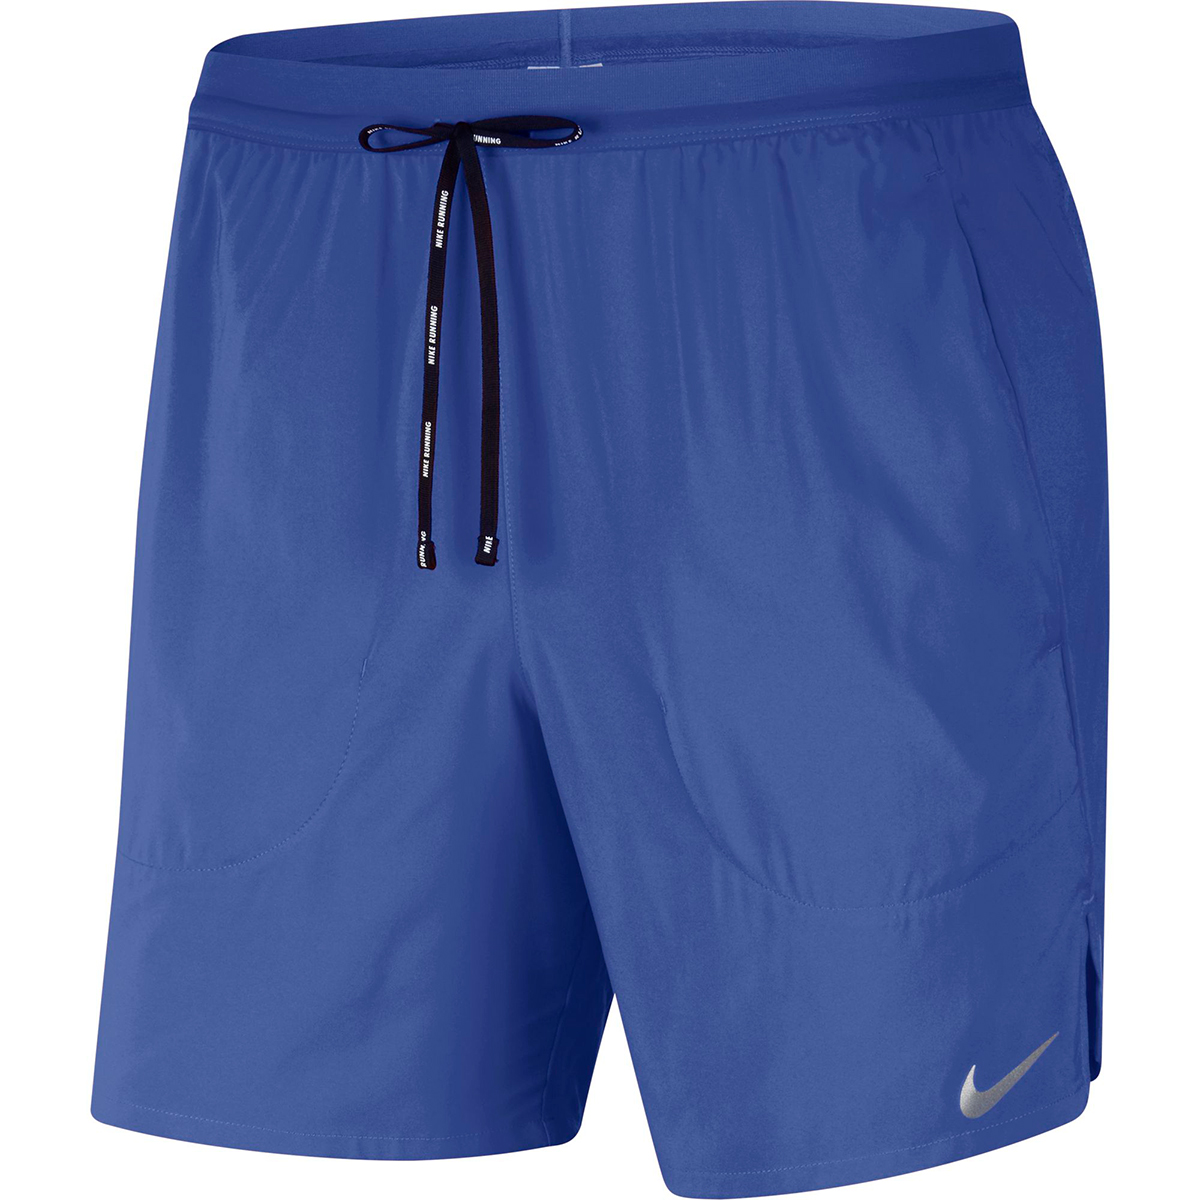 """Men's Nike Flex Stride 7"""" 2-In-1 Running Shorts - Color: Astronomy Blue/Royal Pulse - Size: M, Astronomy Blue/Royal Pulse, large, image 5"""